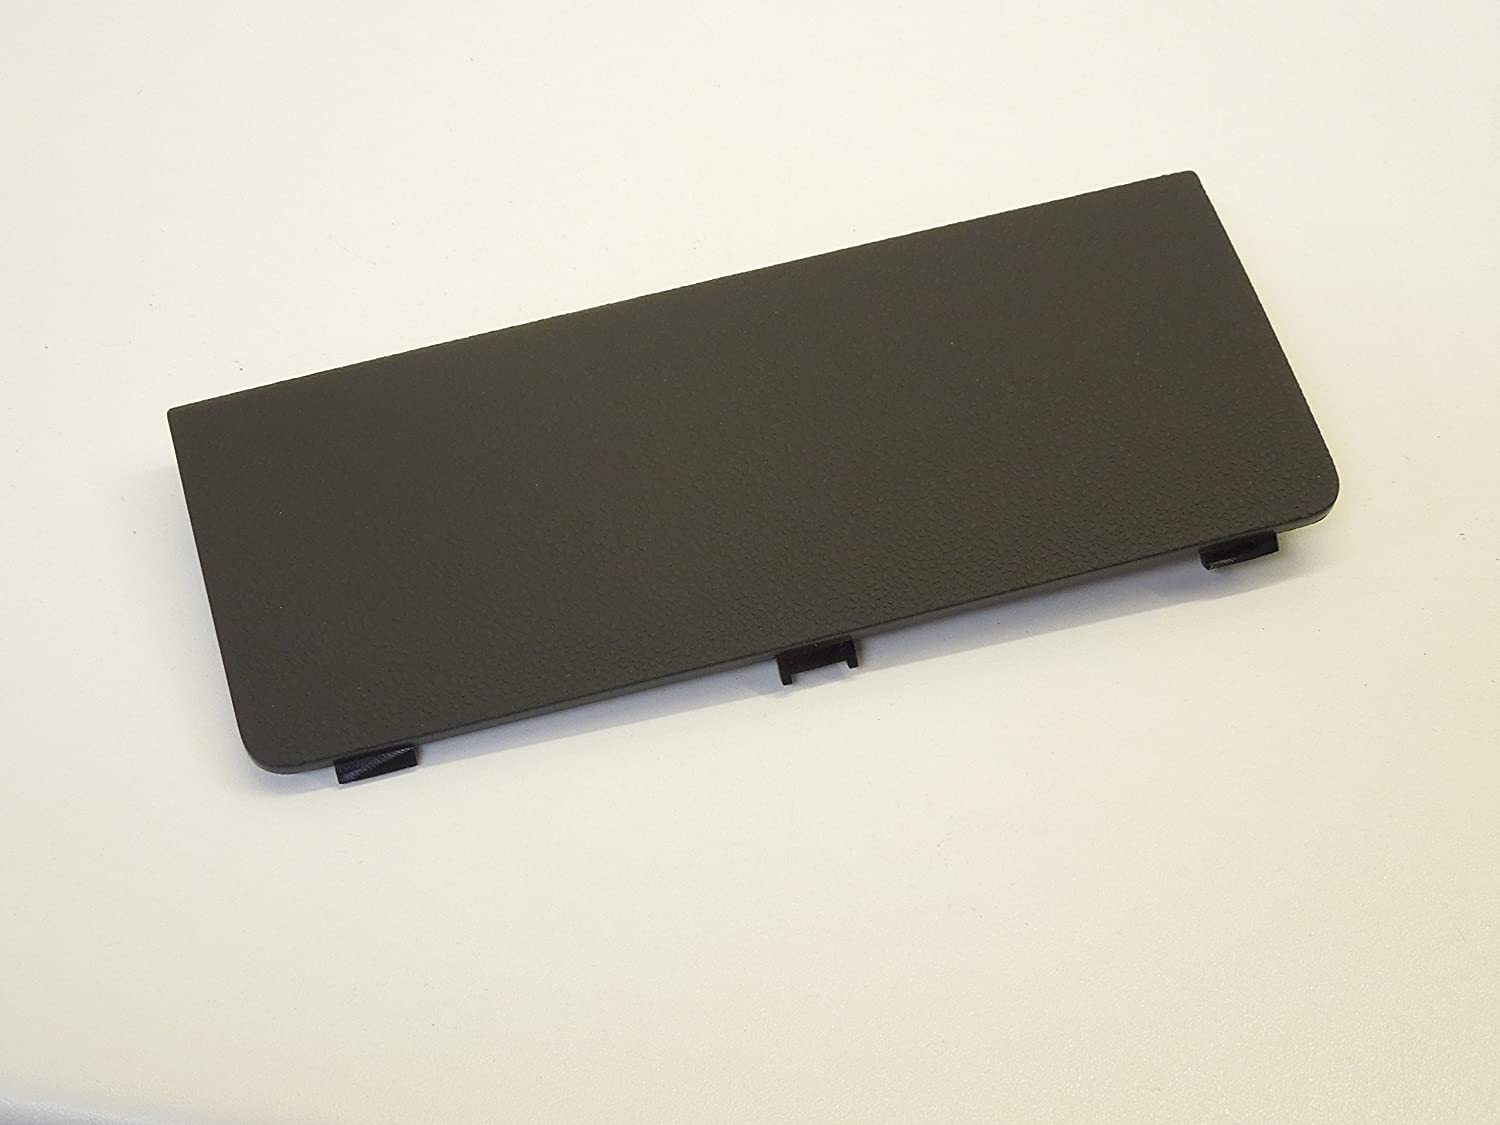 Audi A2 8Z Black Fuse Box Cover Lid Access Panel New: Amazon.co.uk: Car &  Motorbike